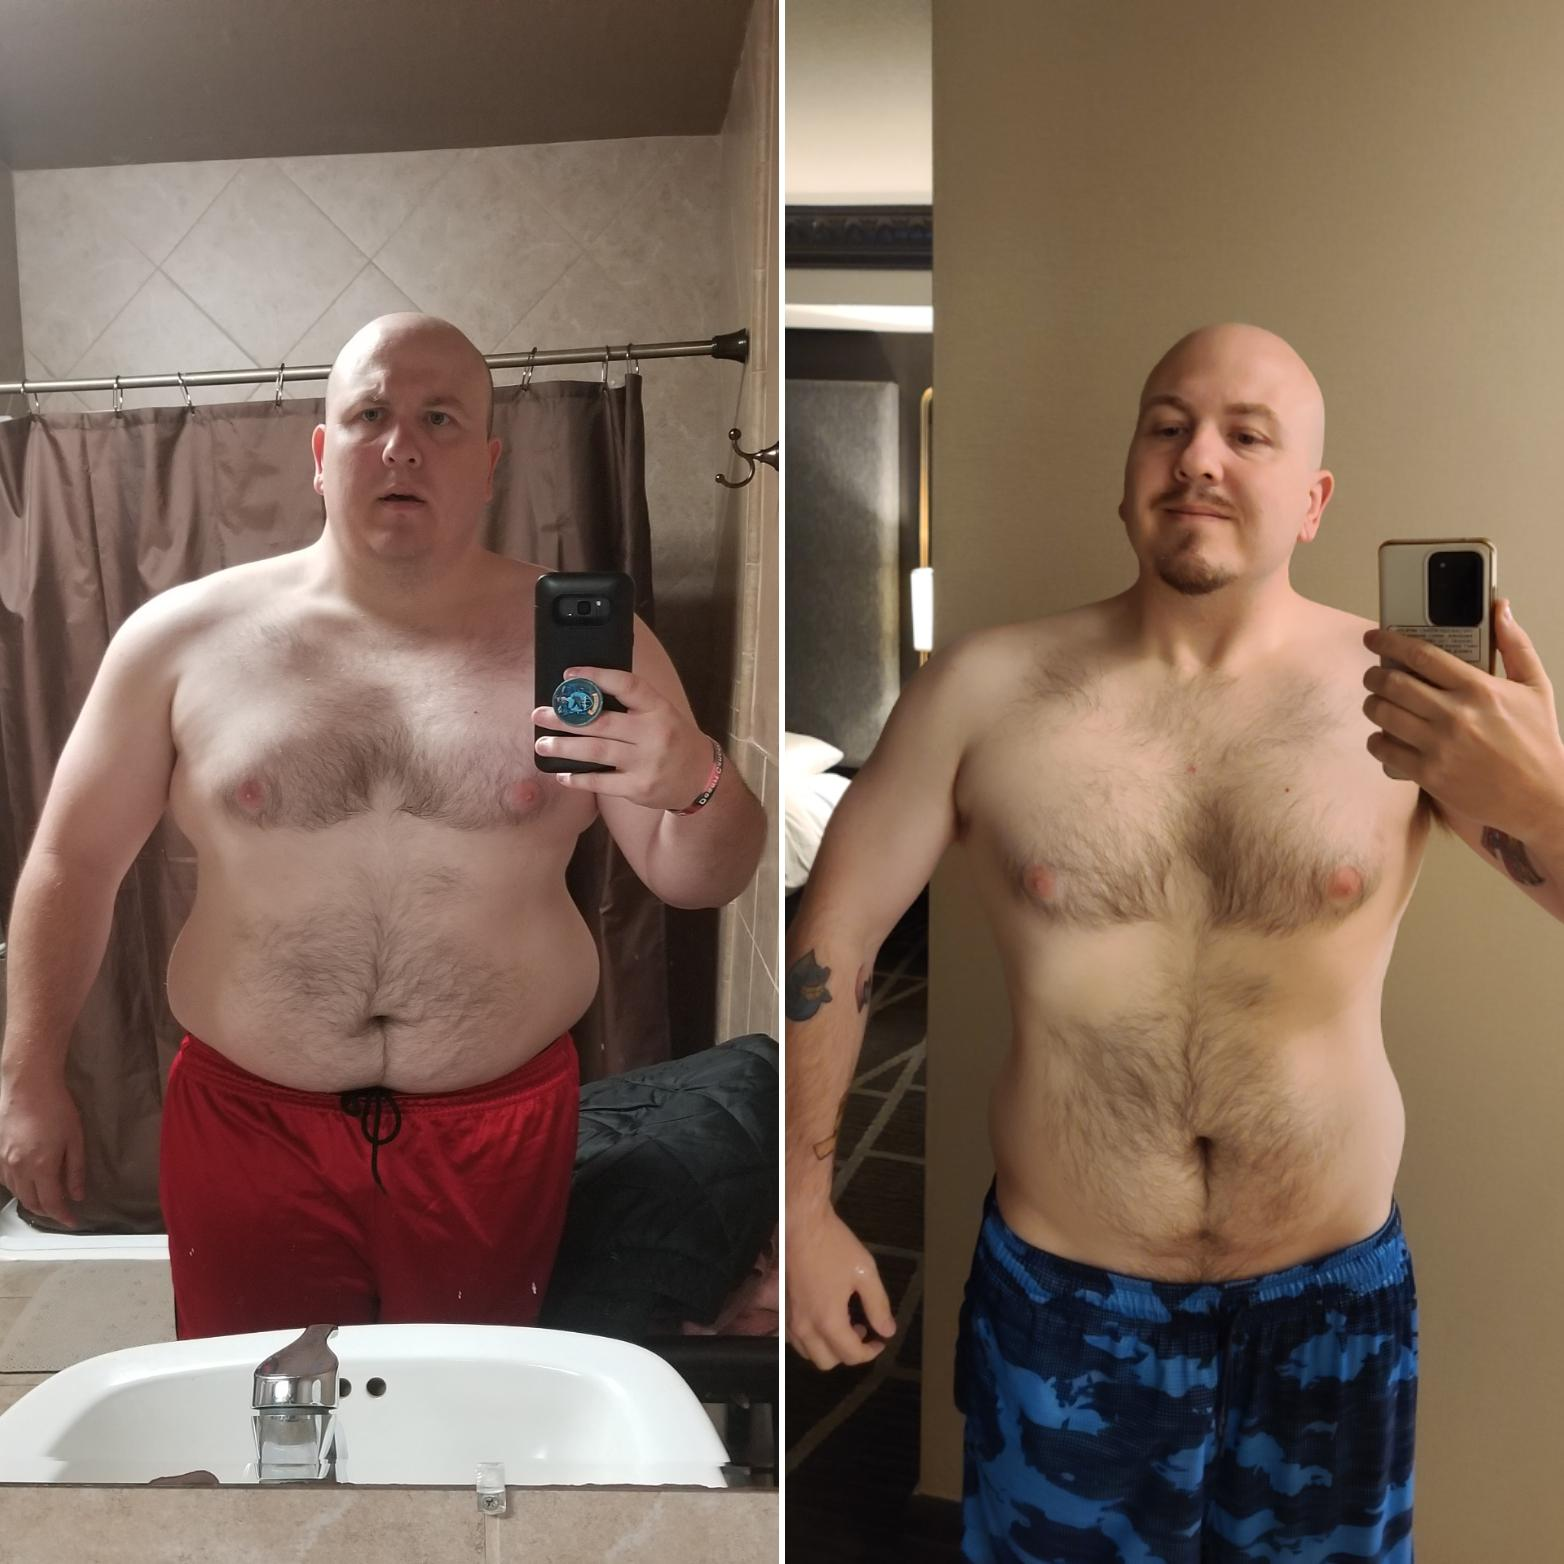 5 foot 7 Male Before and After 133 lbs Fat Loss 330 lbs to 197 lbs